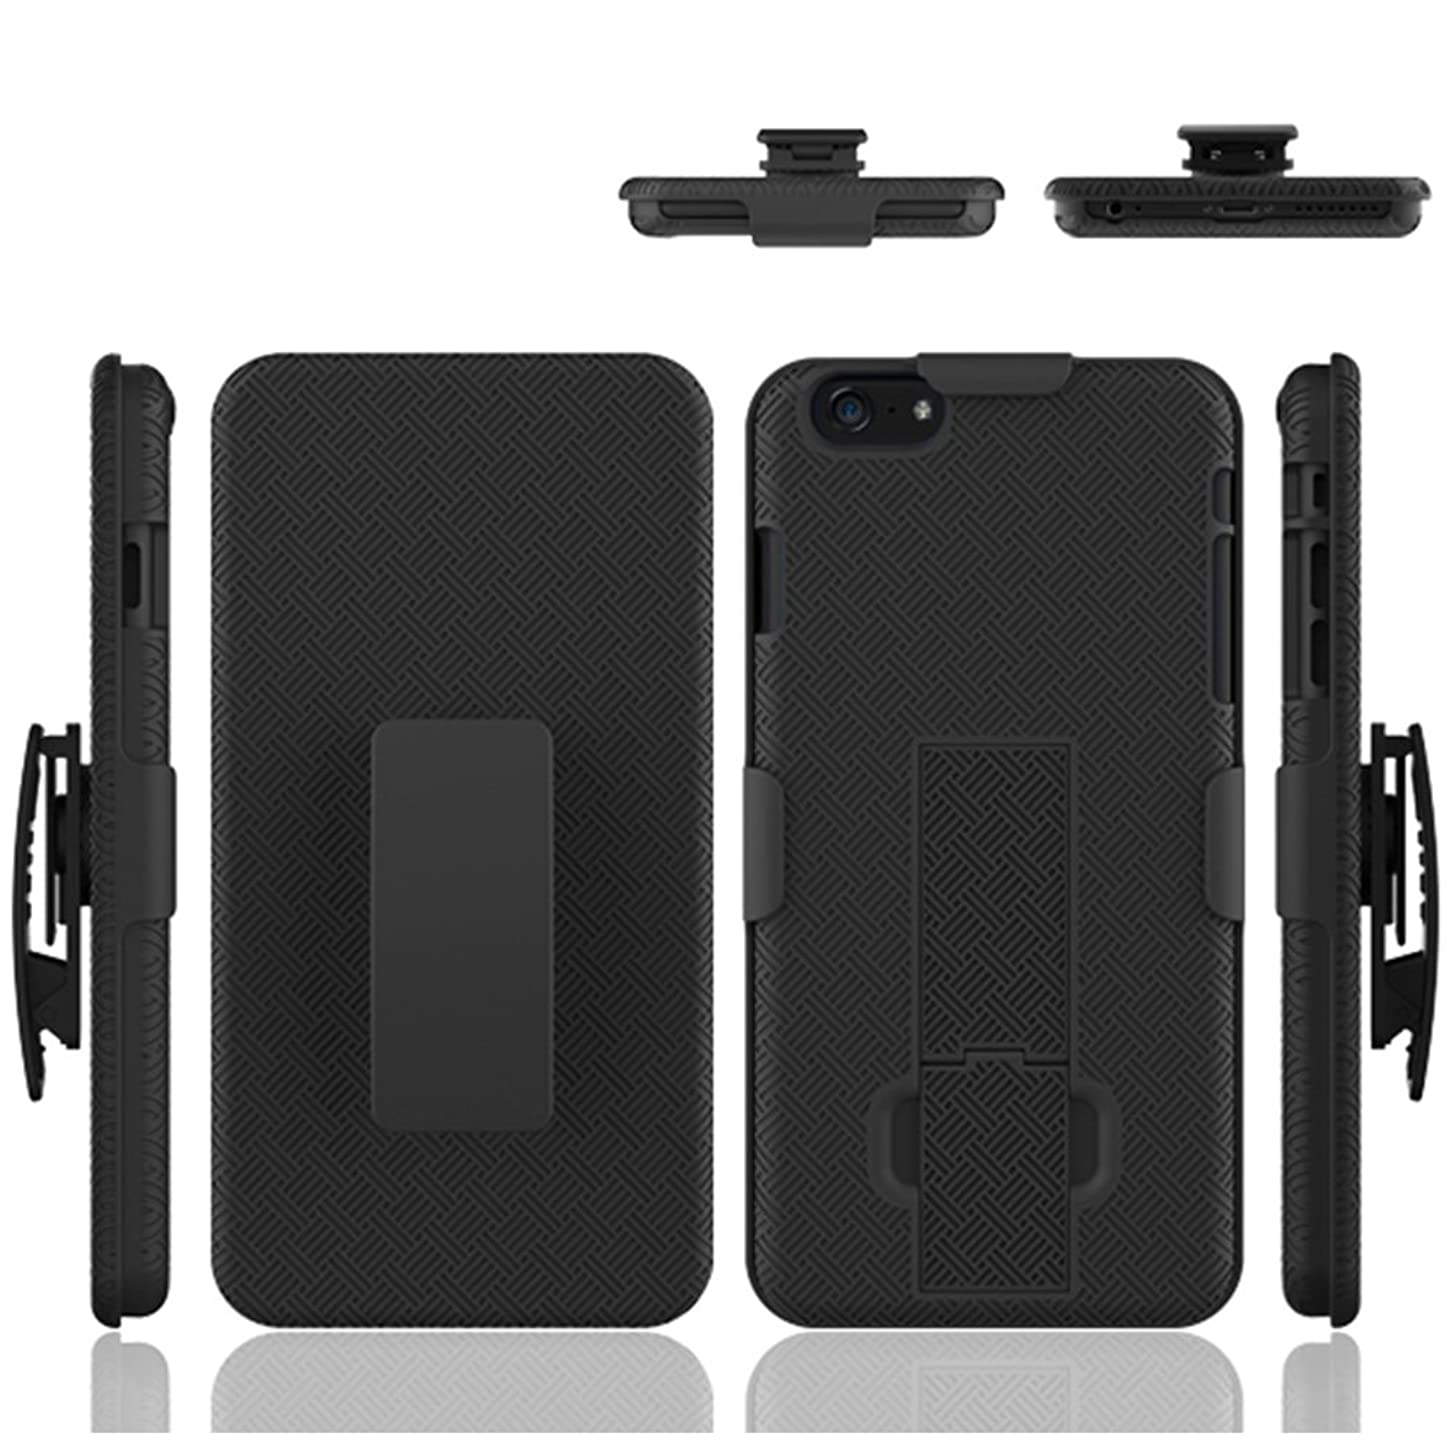 iPhone 6s Plus Case, 6 Plus Case, HLCT Slim Shell Complete Protective Como Set with Built-In Stand Kickstand